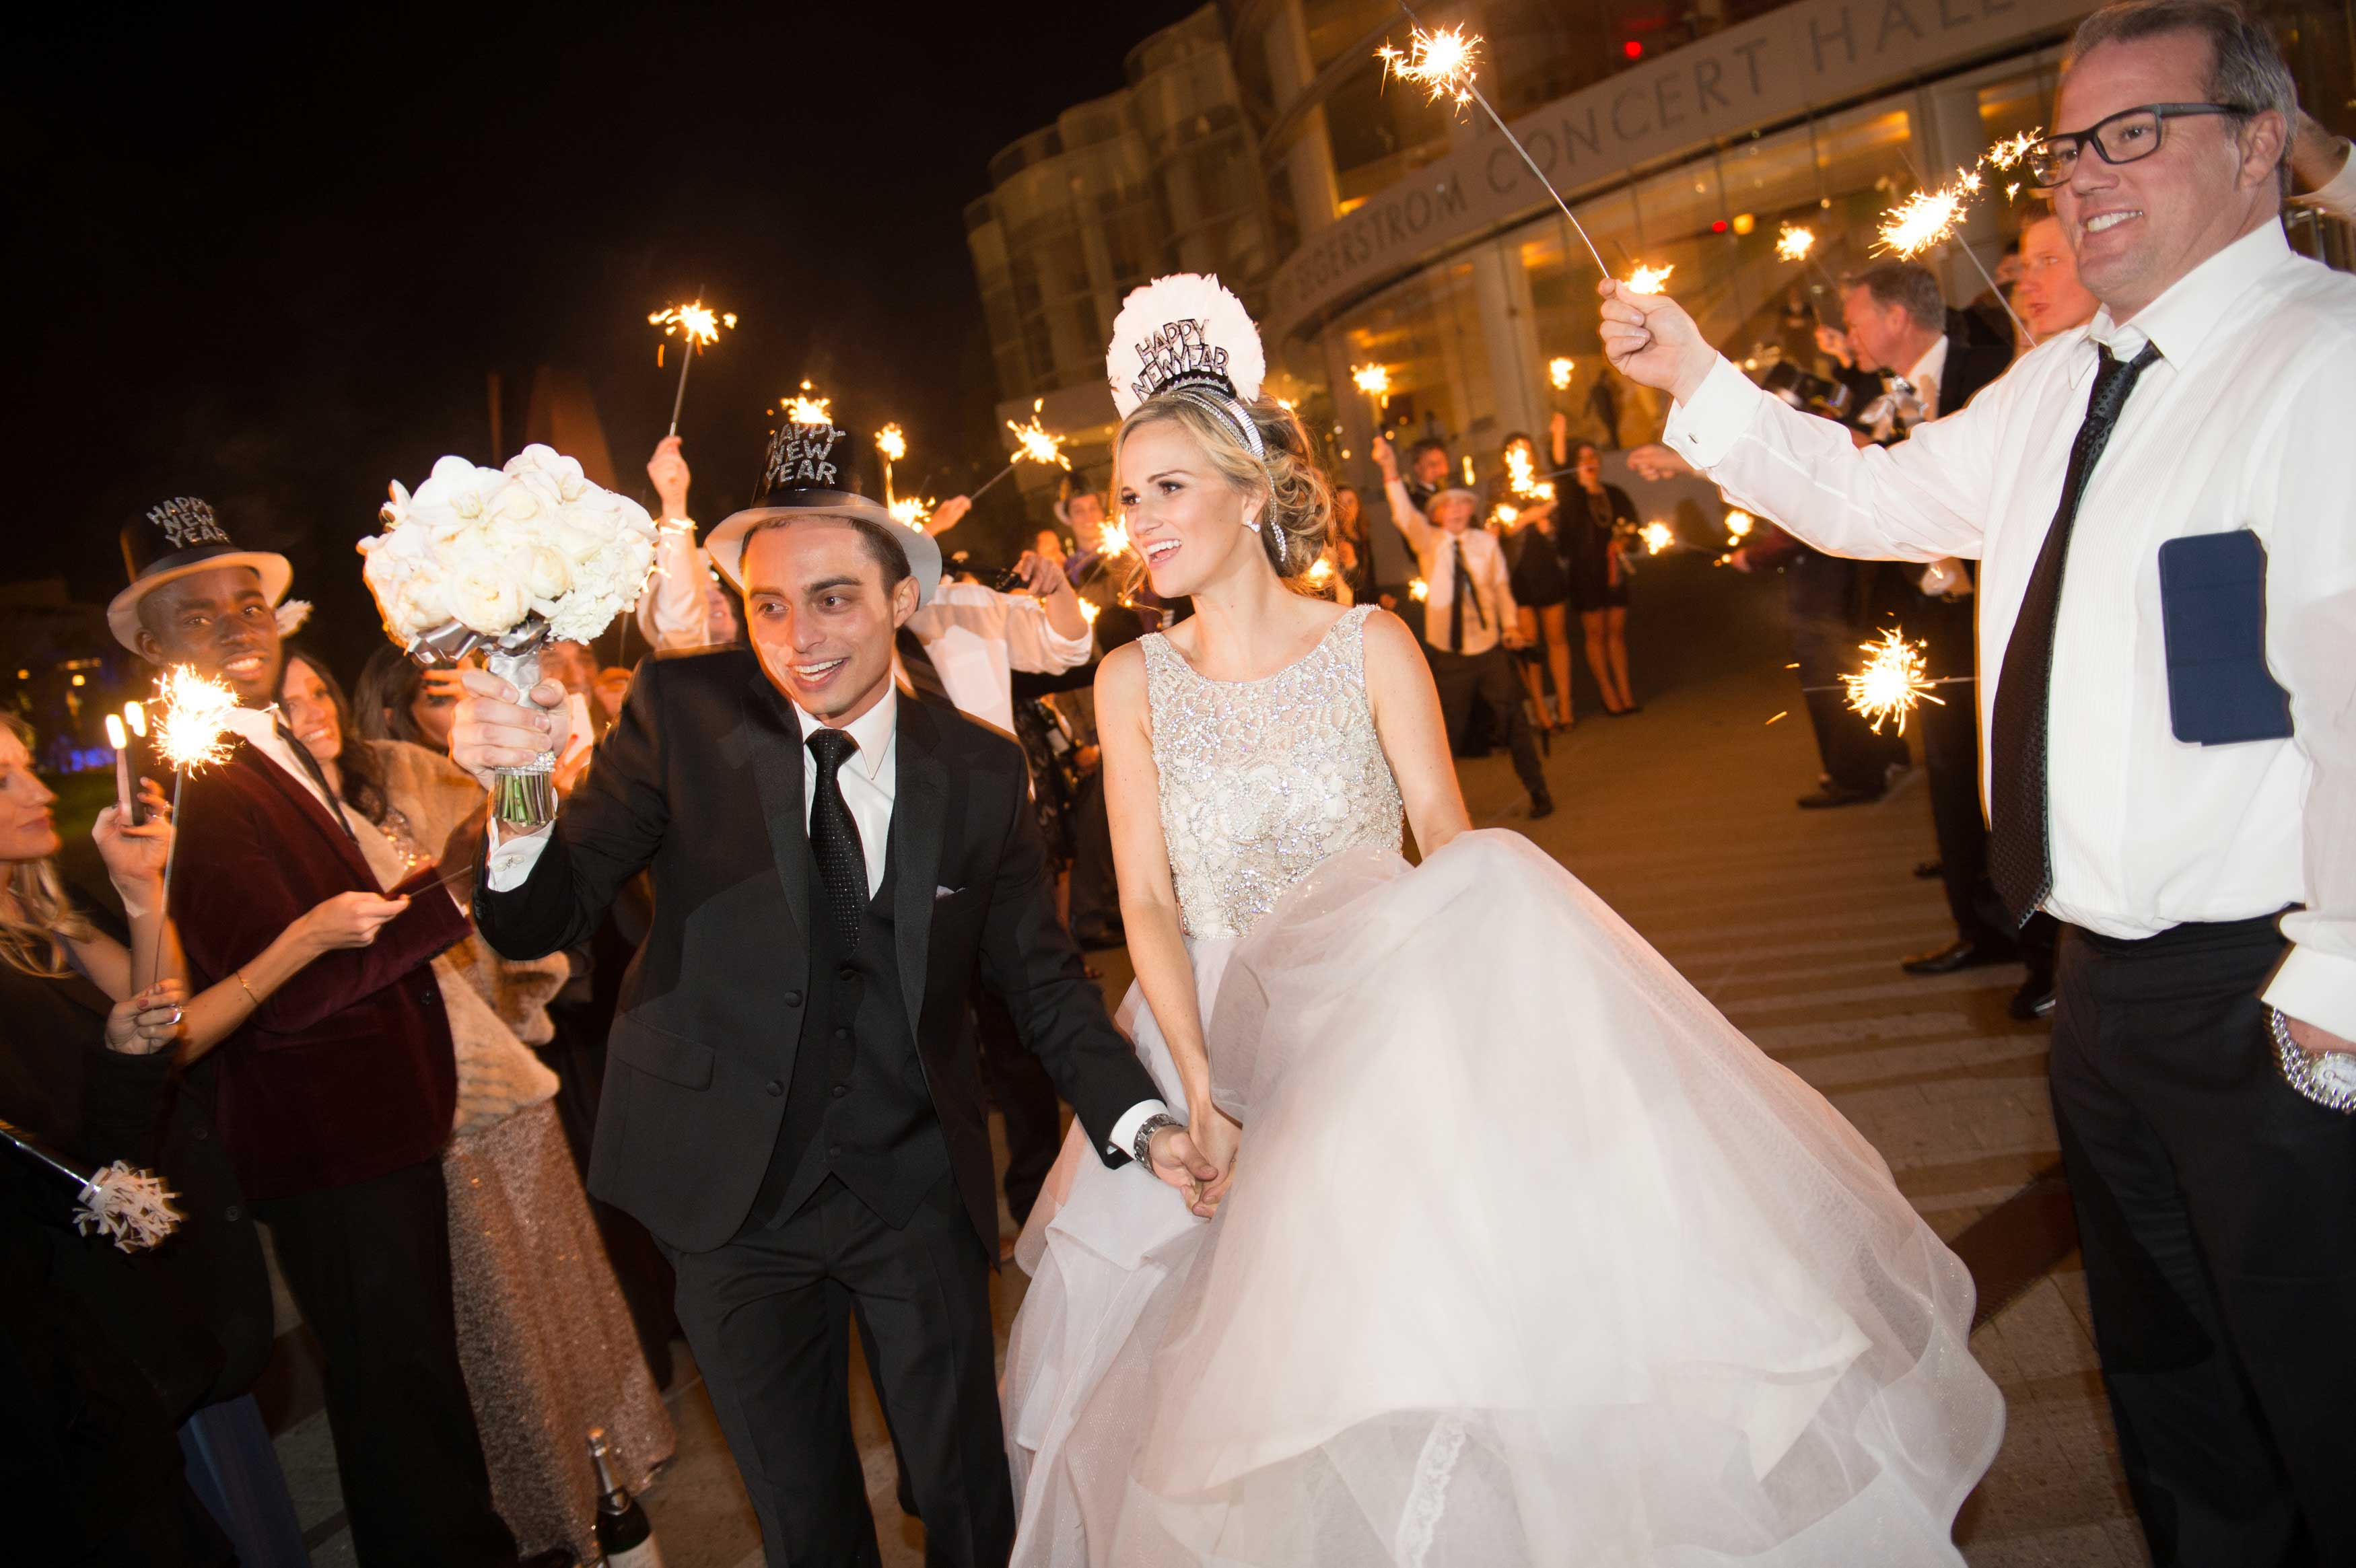 Bride and groom in New Year's Eve tiara hats and headbands sparkler exit